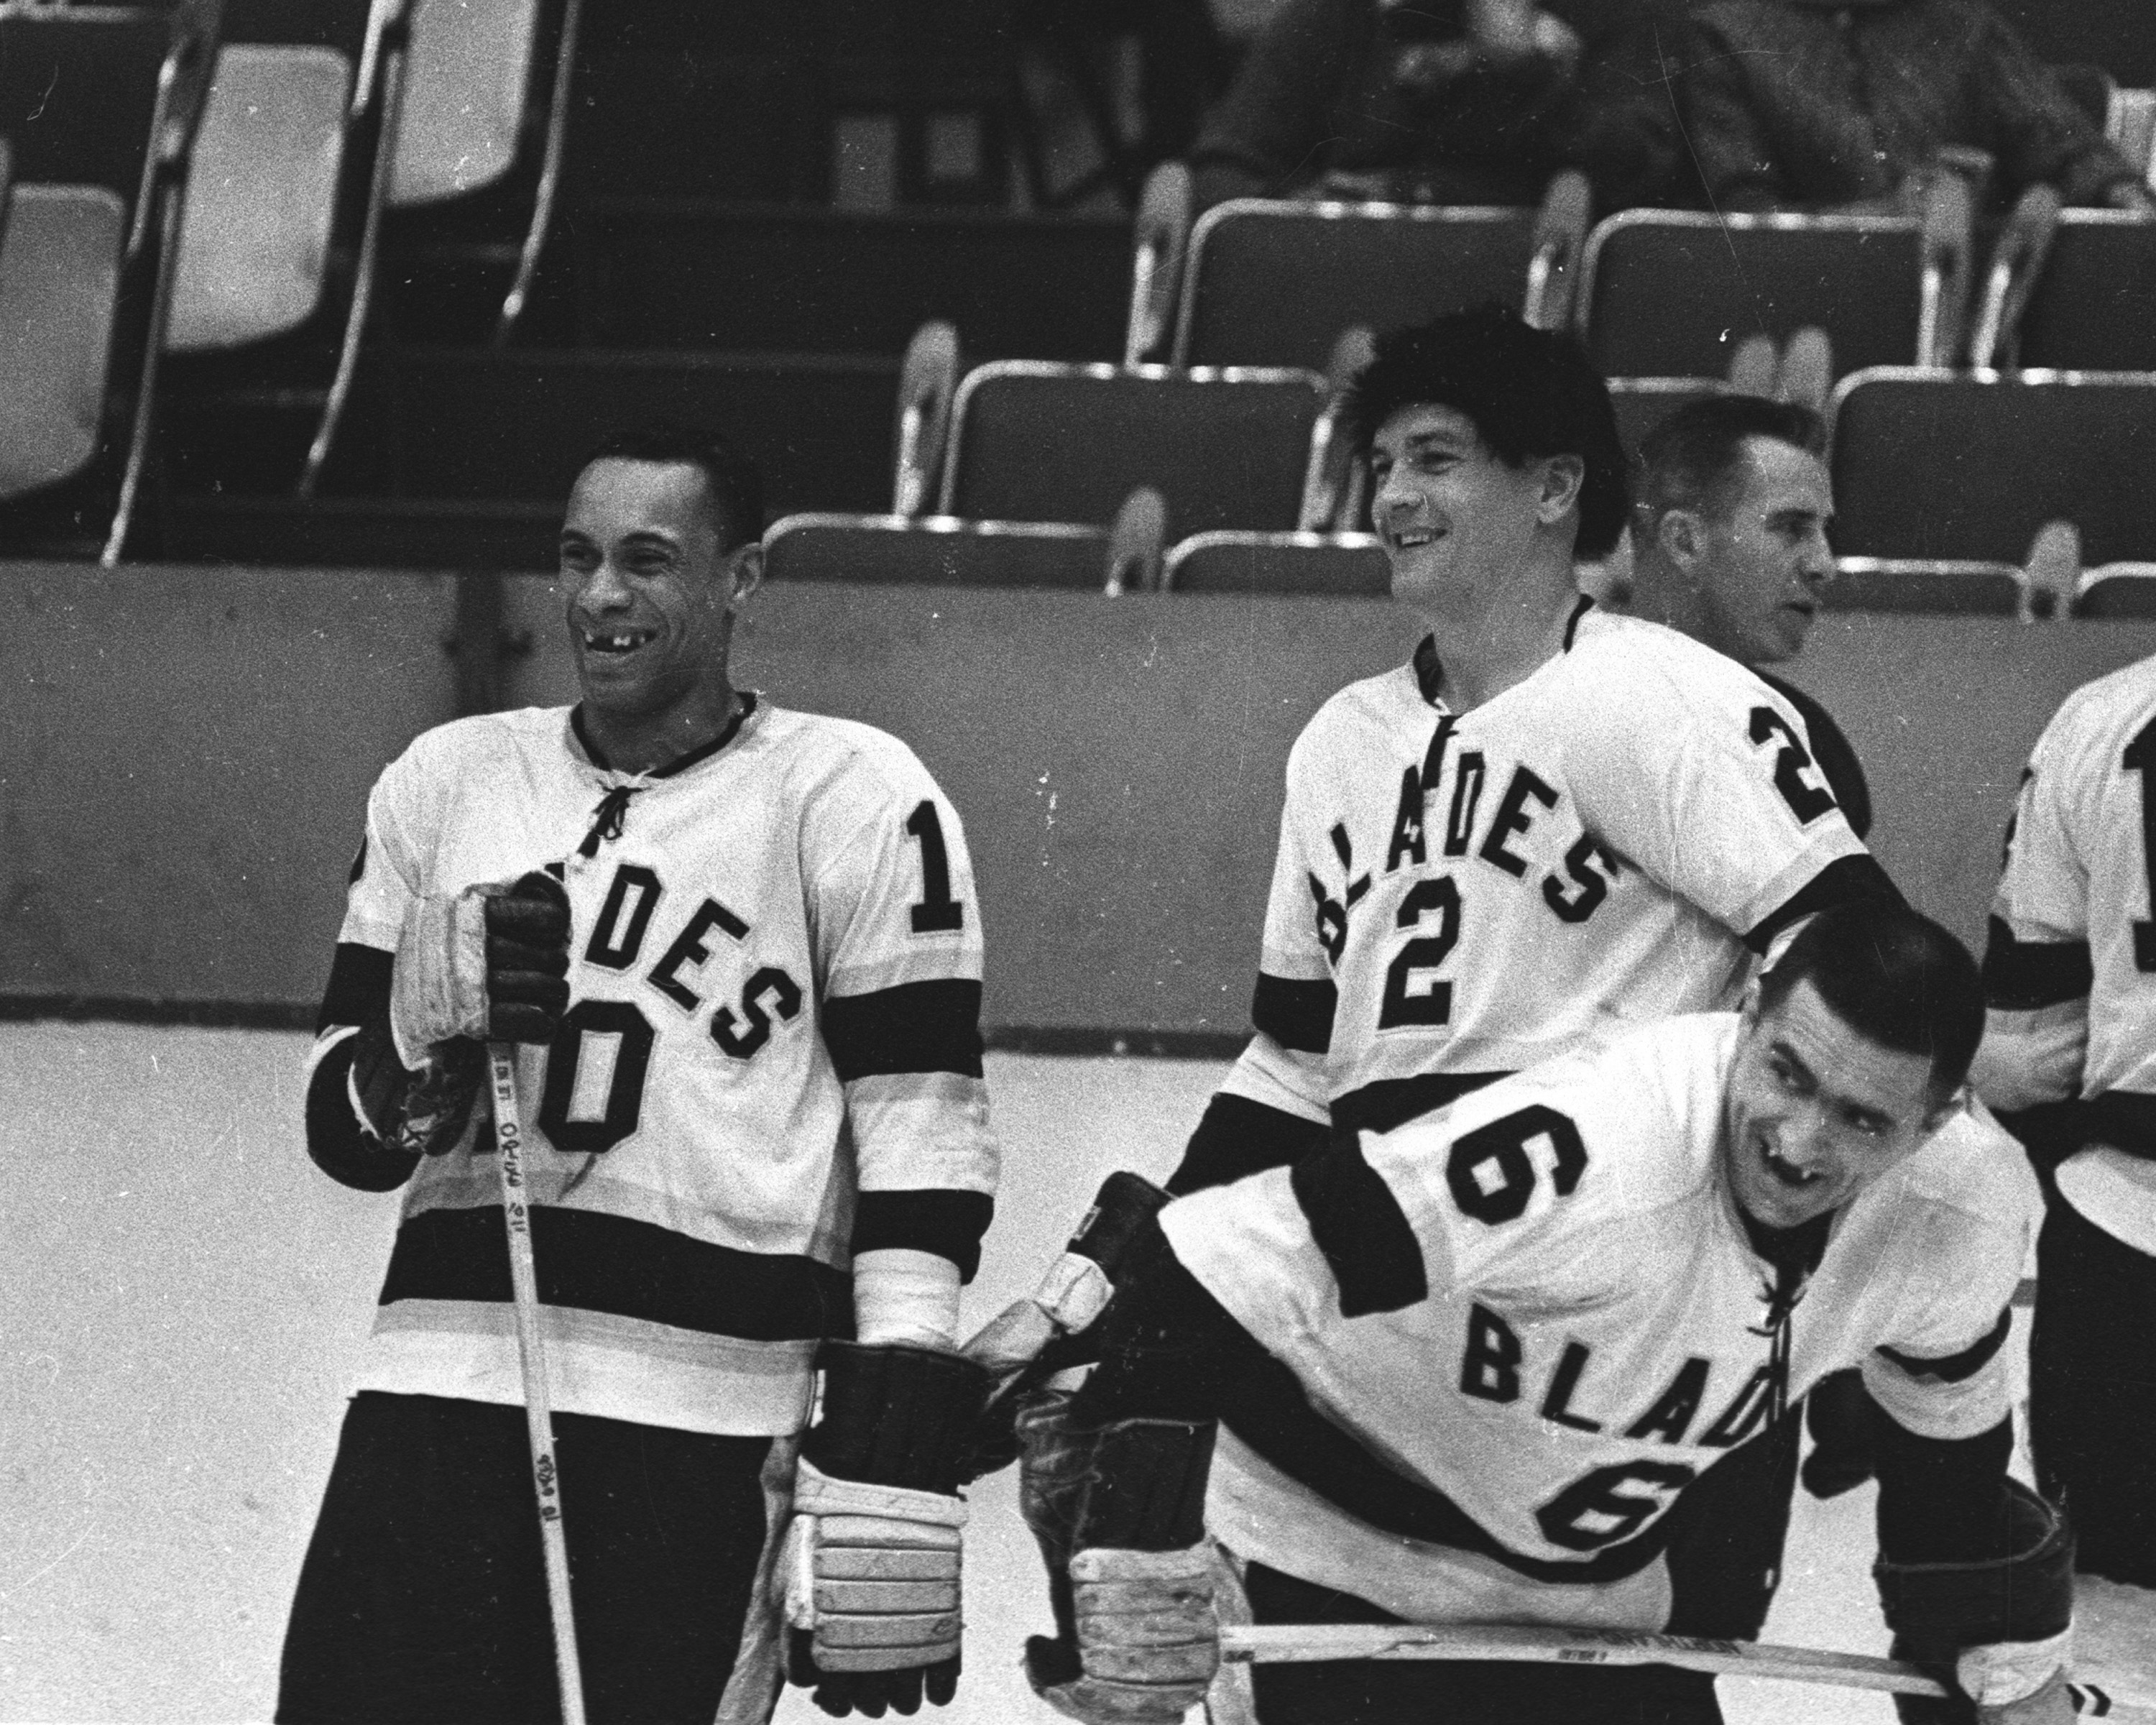 Boston Bruins: Remembering Willie O'Ree's Impact 60 Years On